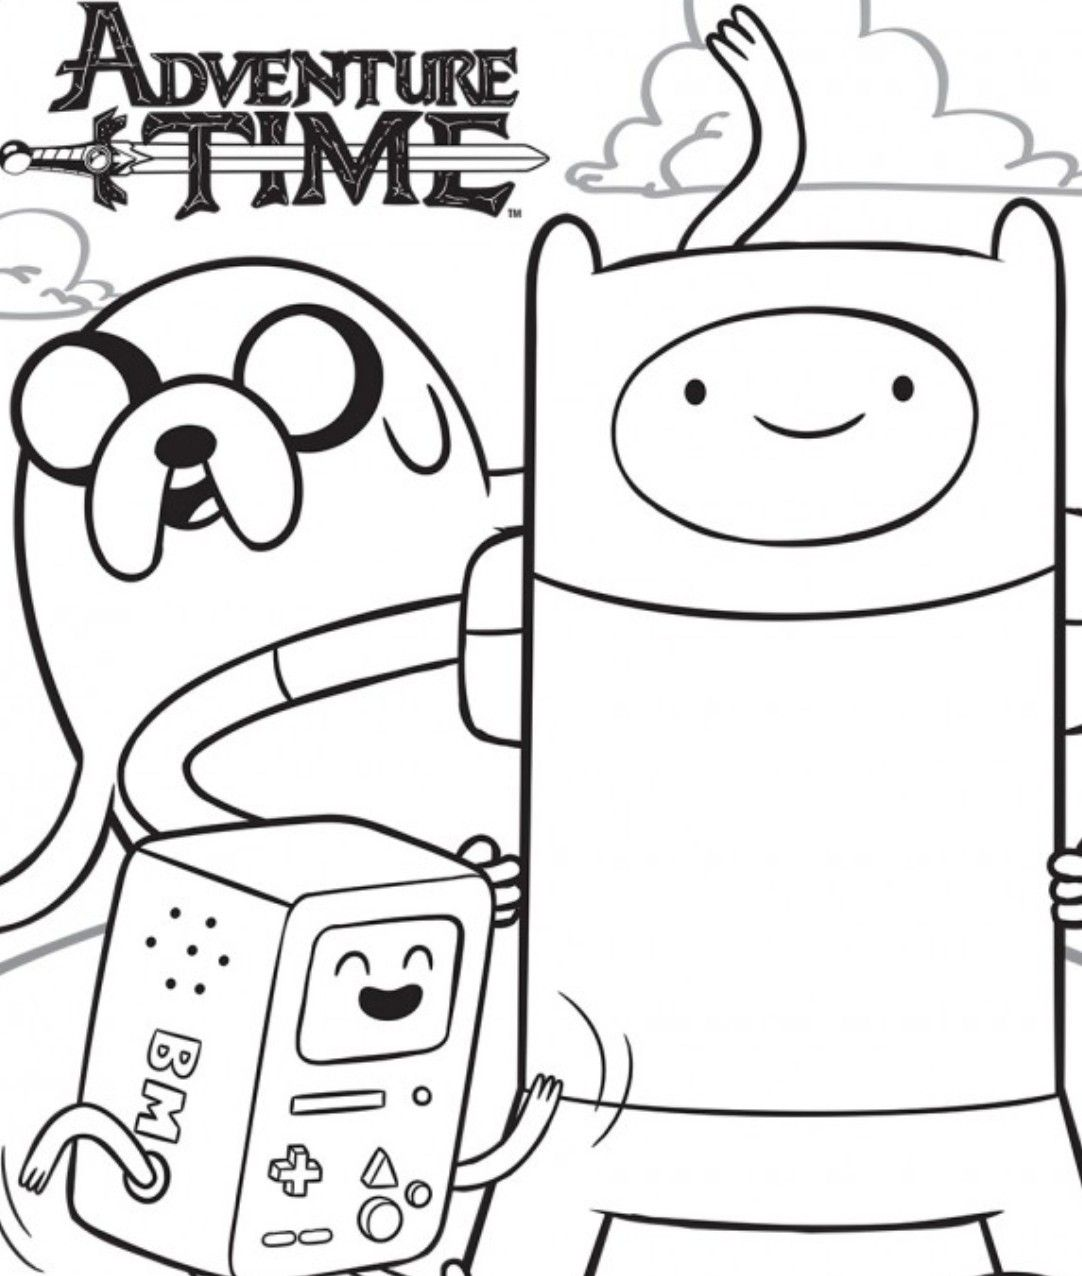 adventure time coloring pages  Coloring  Pinterest  Craft